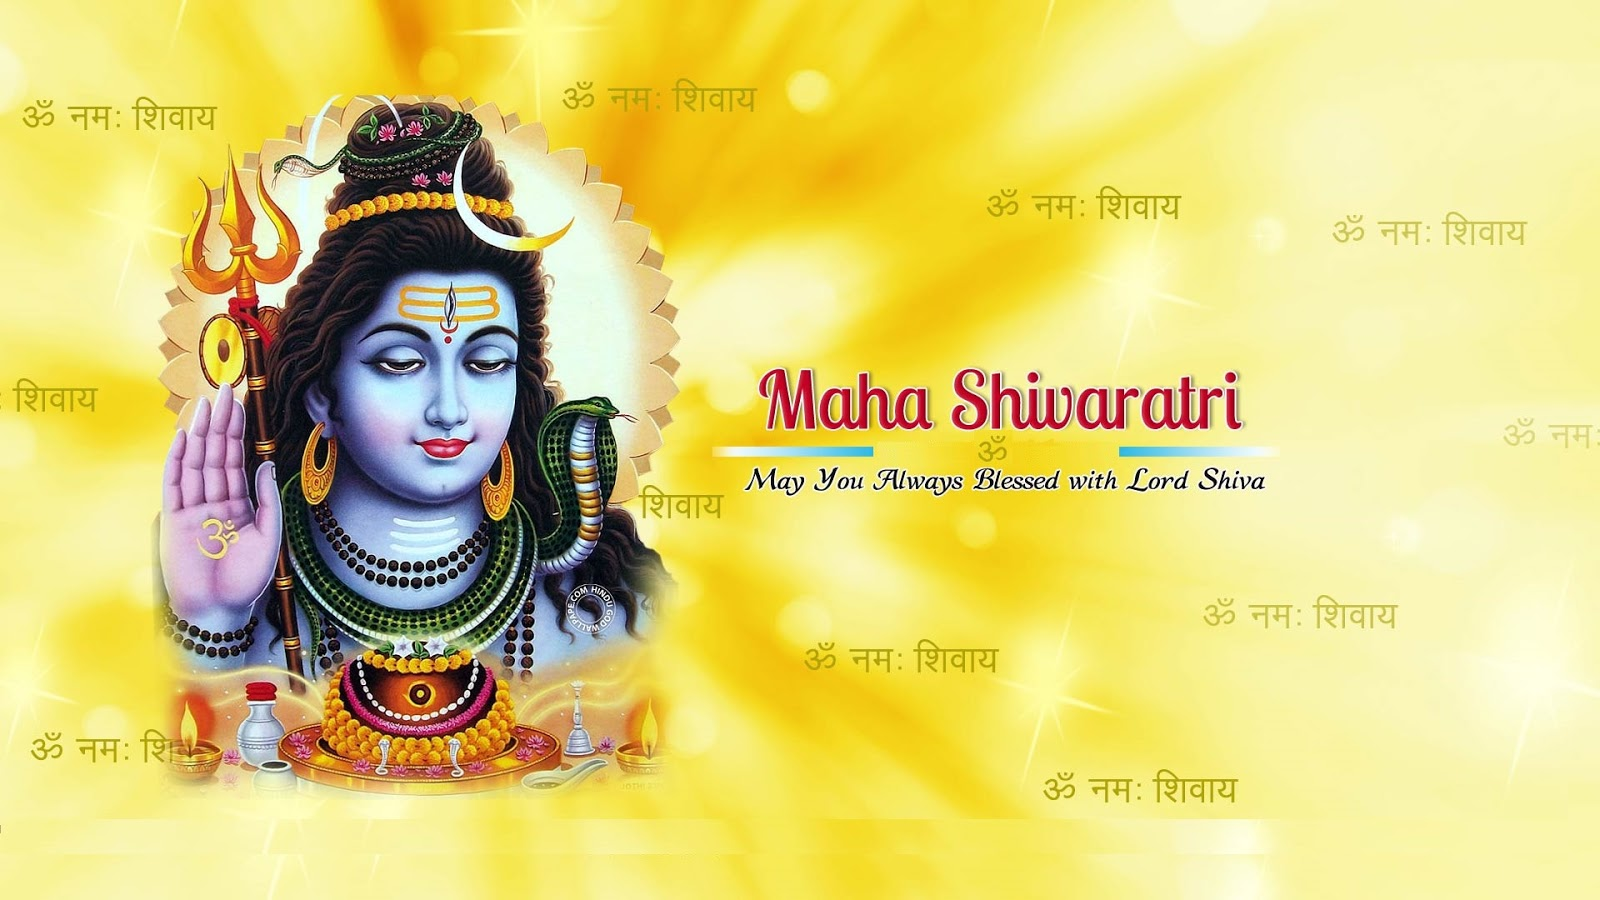 Happy mahashivratri wishes sms and status in hindi and english maha shivratri greetings m4hsunfo